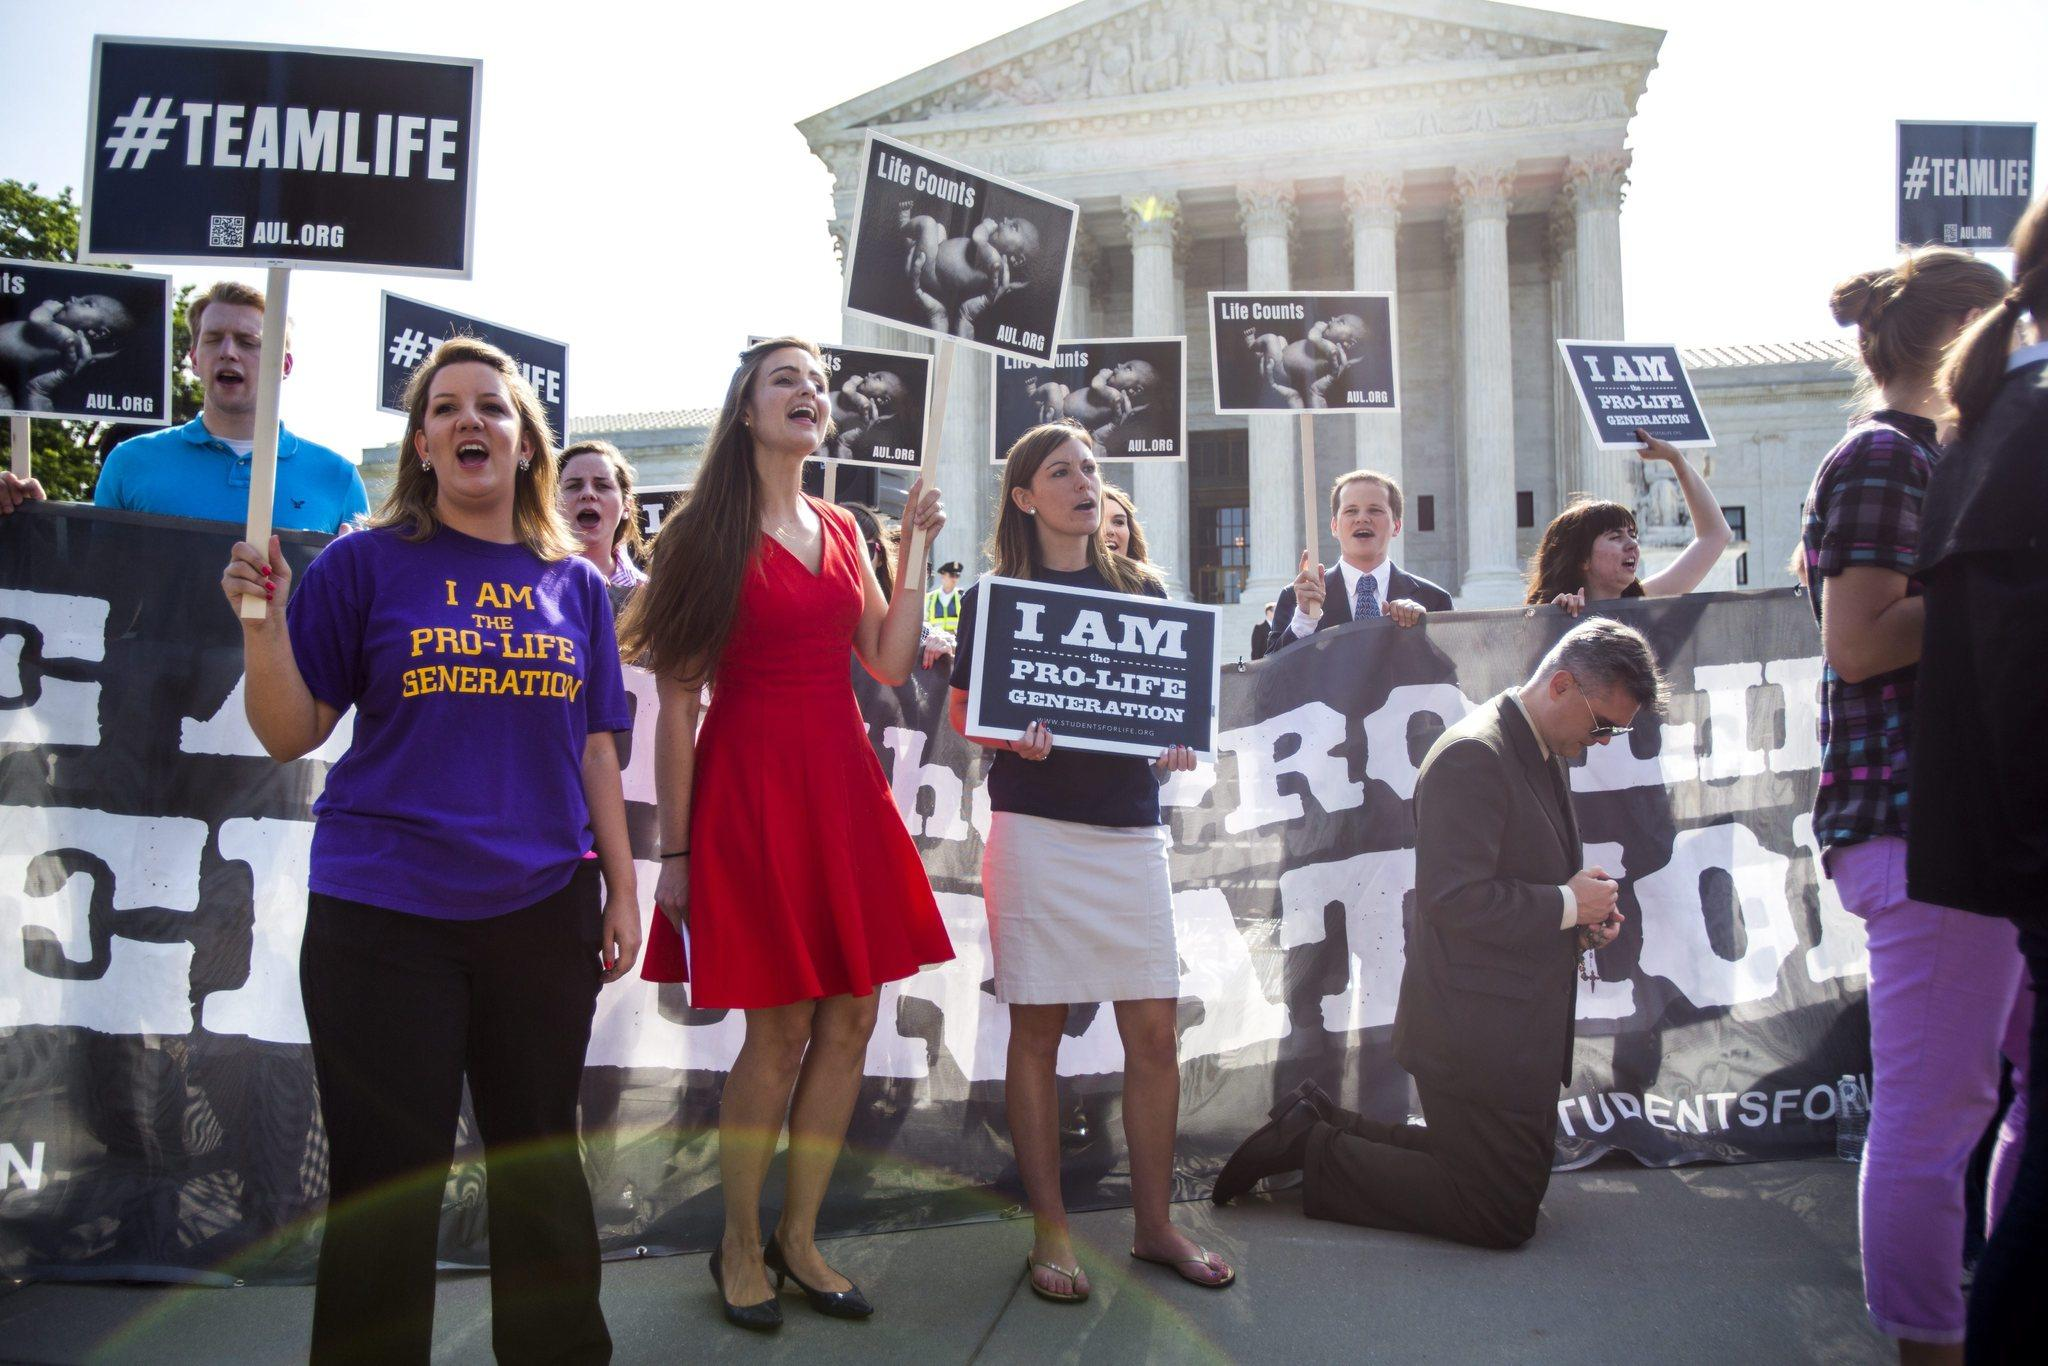 Pro-life protestors gather outside the U.S. Supreme Court where the nine justices are expected to issue their ruling on the Hobby Lobby case, which challenges the Affordable Care Acts mandate that employee health plans include pregnancy preventive services, in Washington, DC